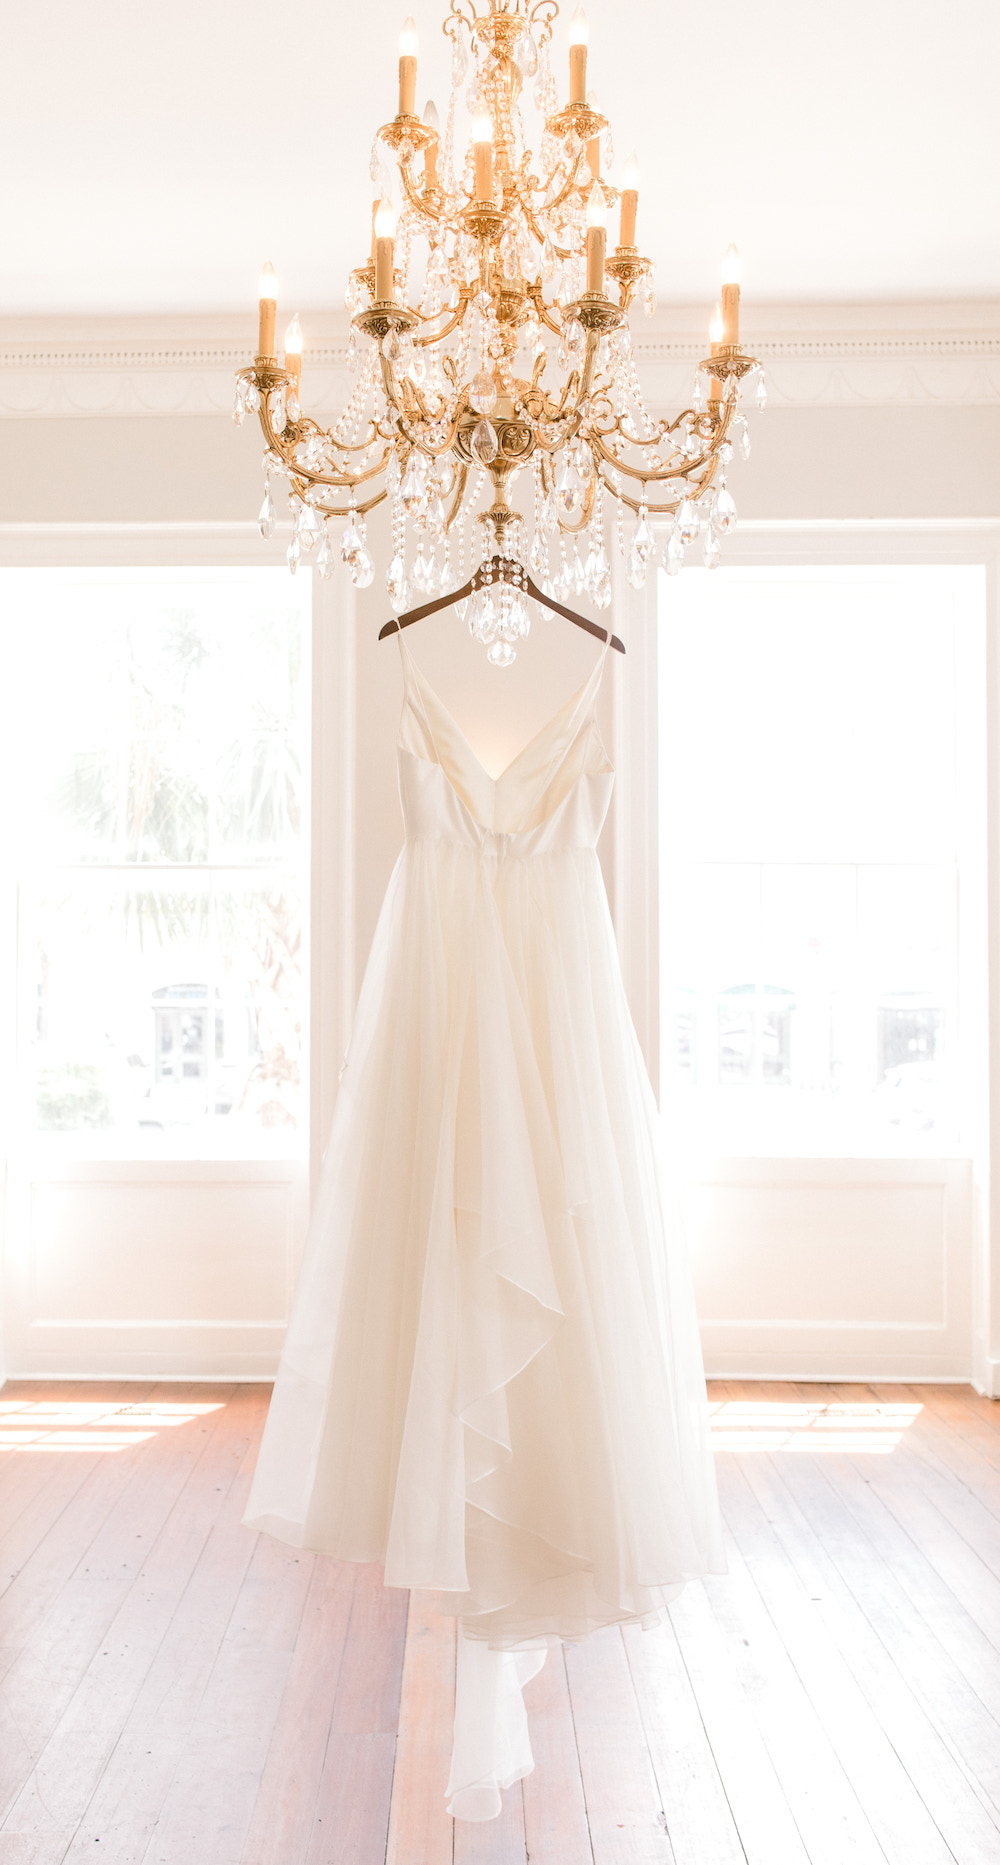 Wedding Gown Hanging On A Southern Chandelier